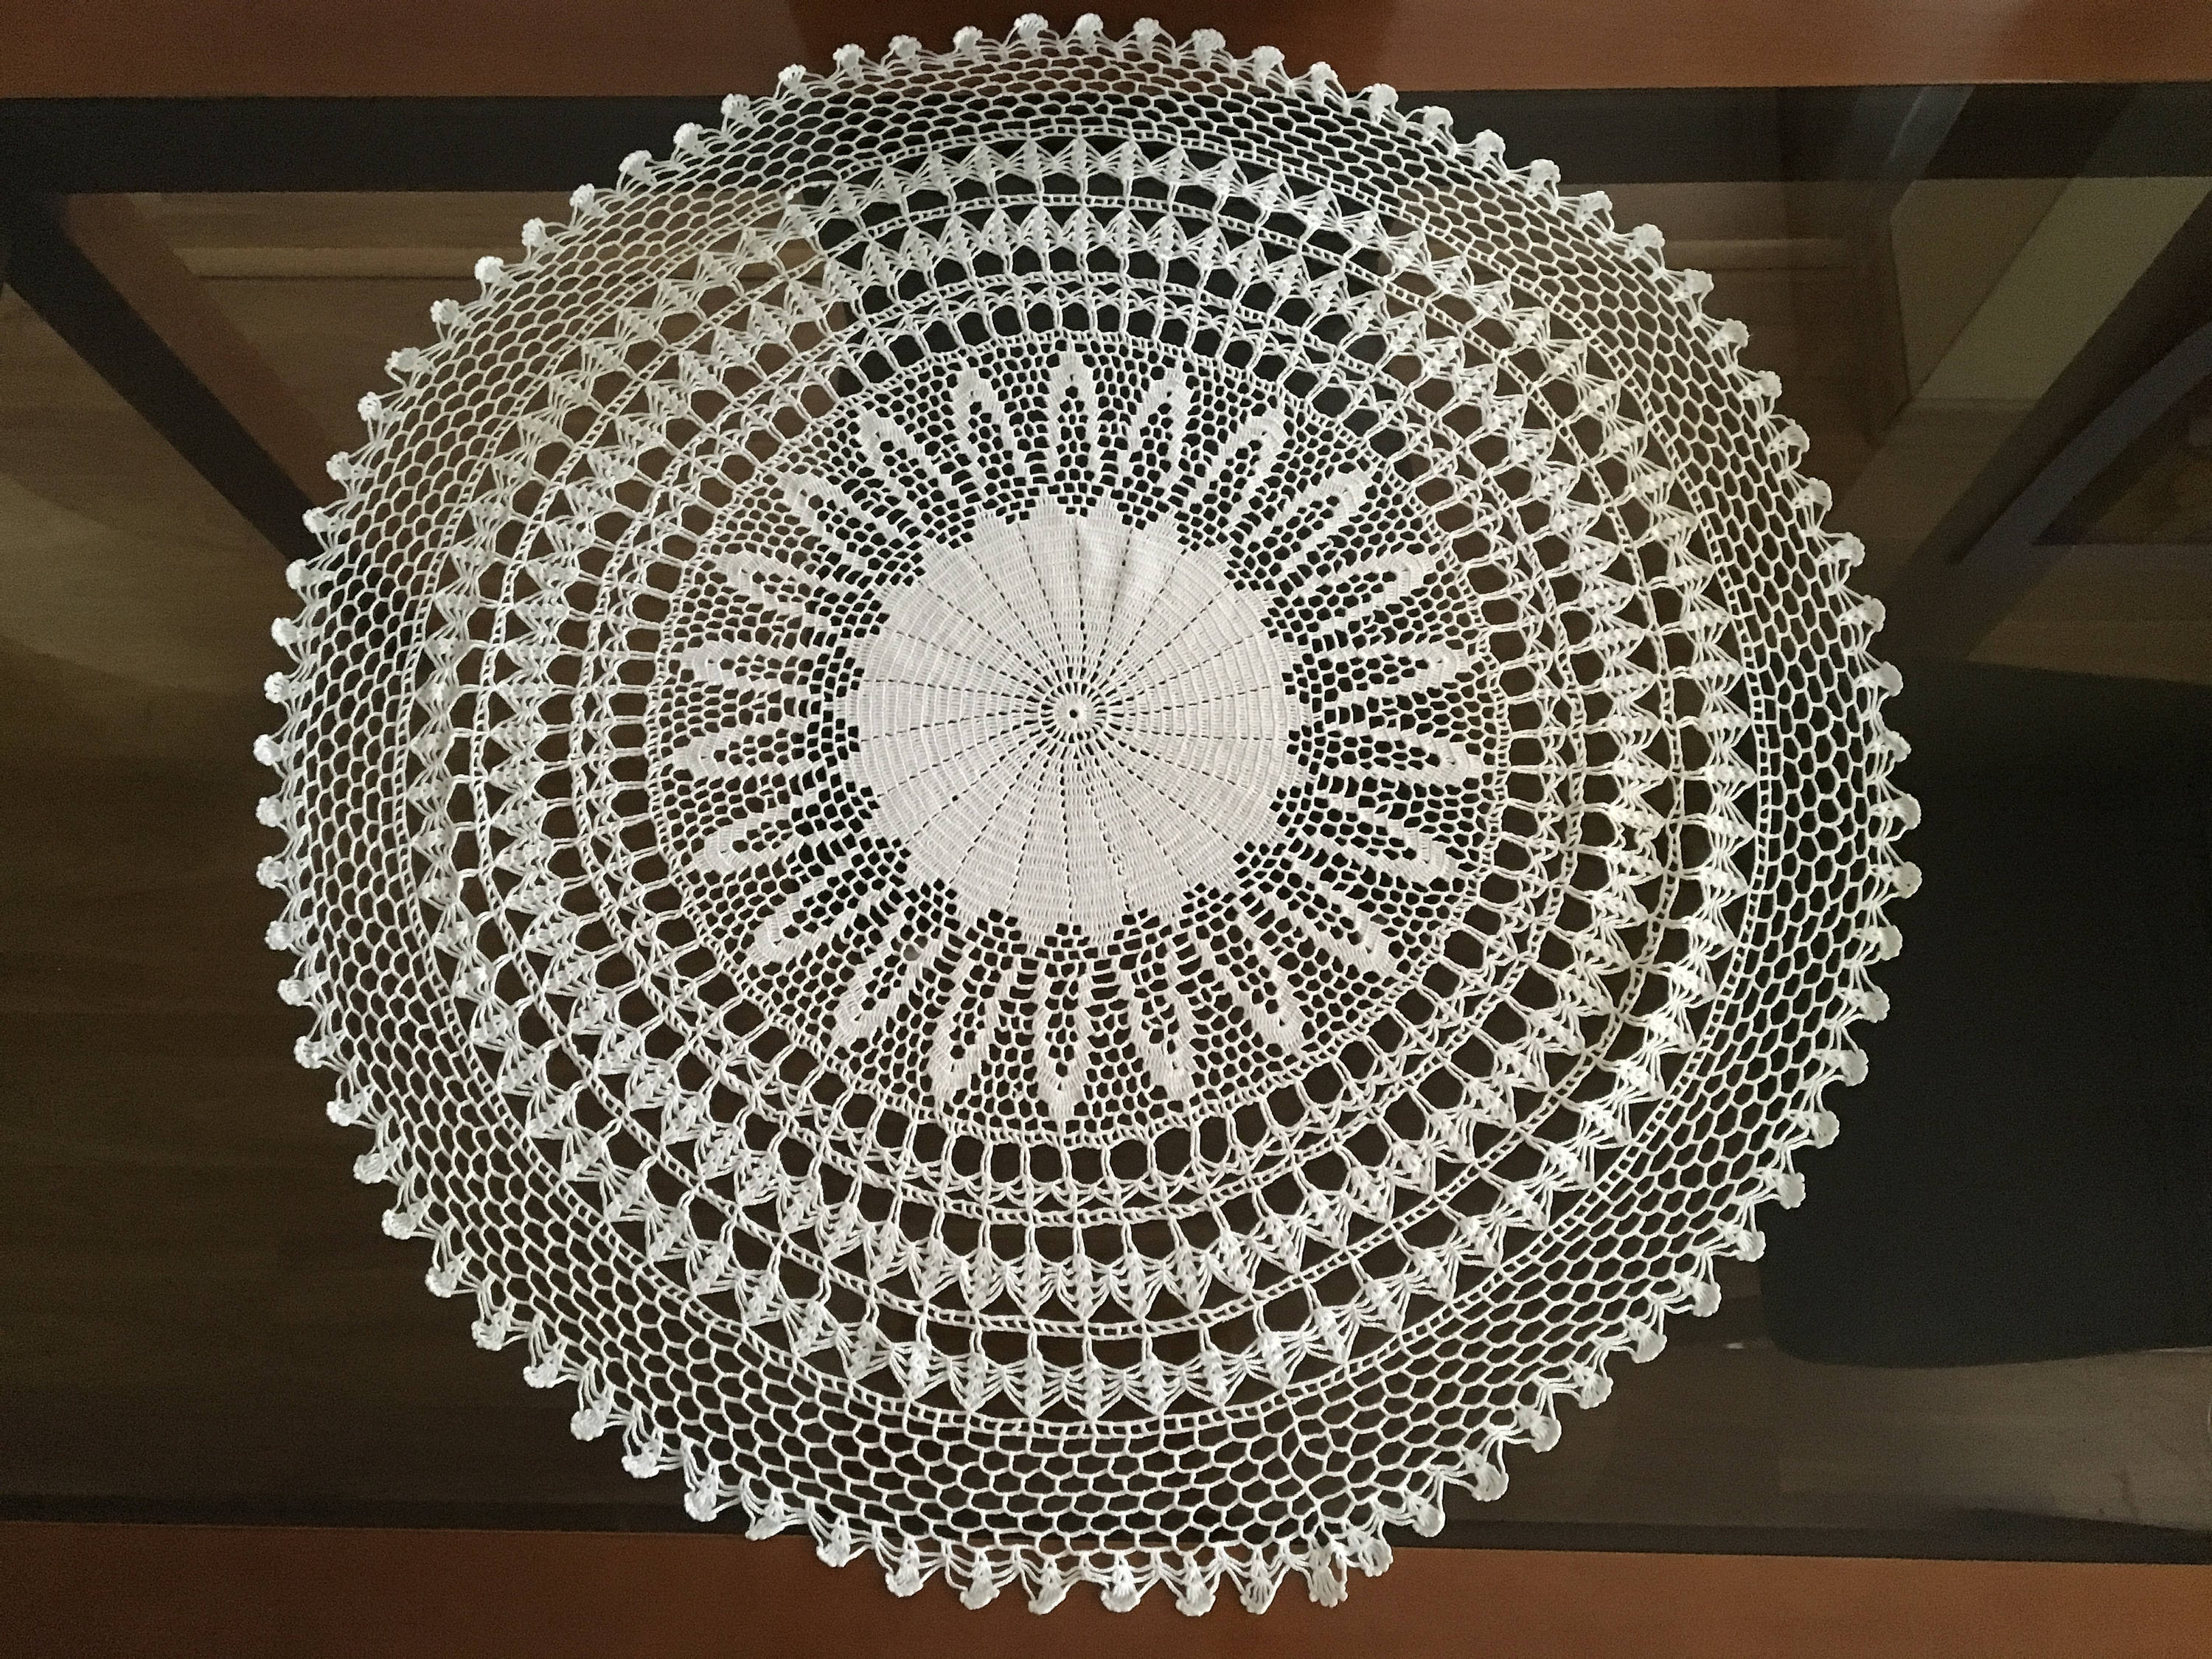 Doily Tablecloth Awesome Wedding Round Doily Crochet Cotton Tablecloth Lace Doilies Of Charming 49 Pictures Doily Tablecloth